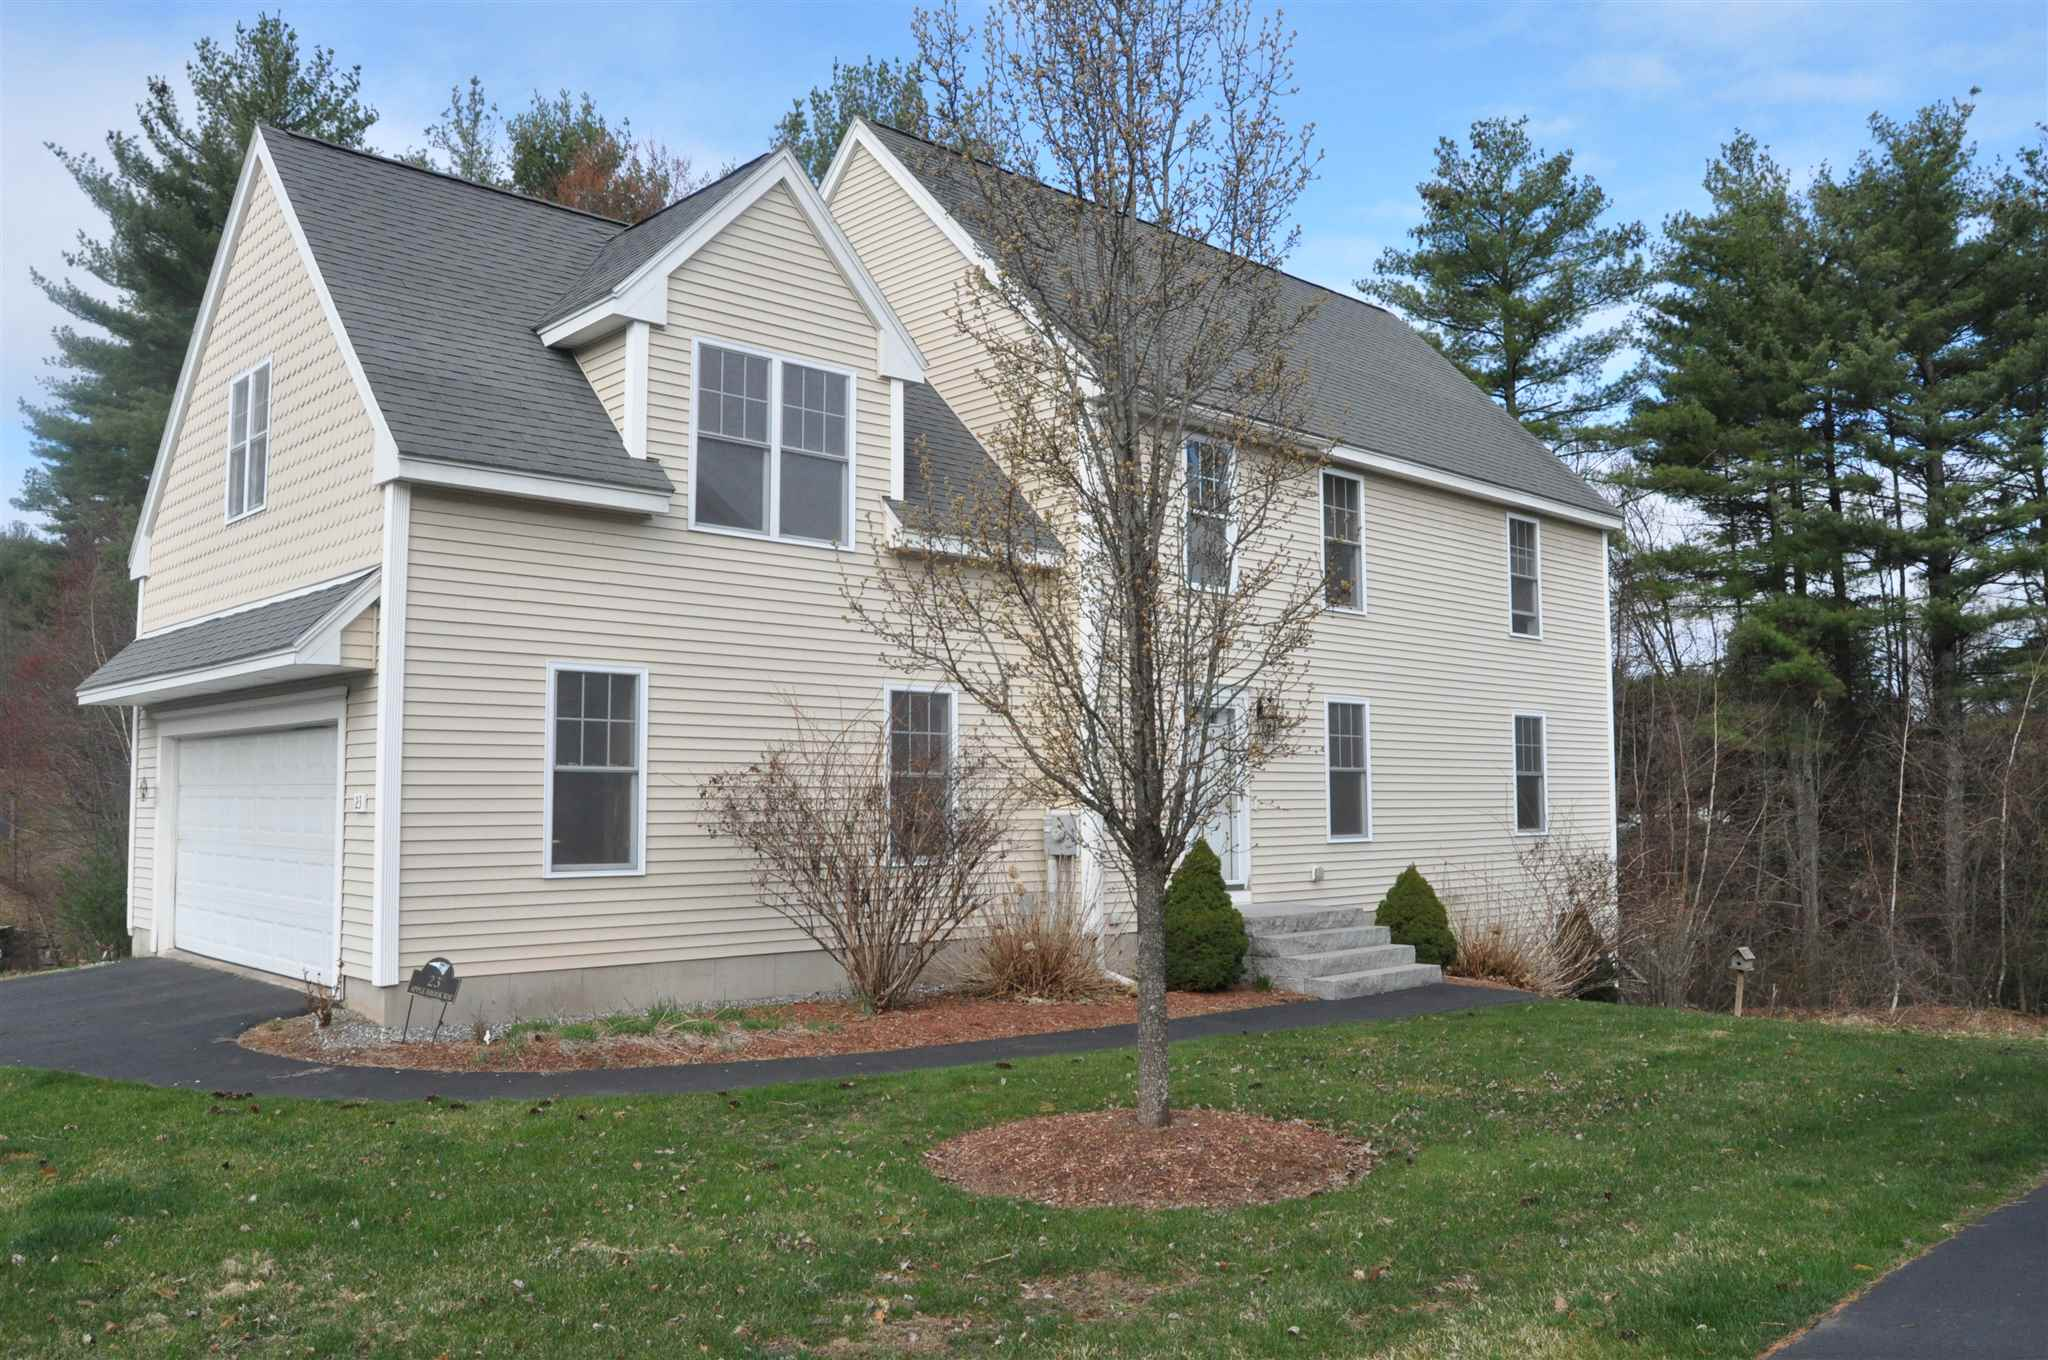 Photo of 23 Apple Brook Way Manchester NH 03109-5141